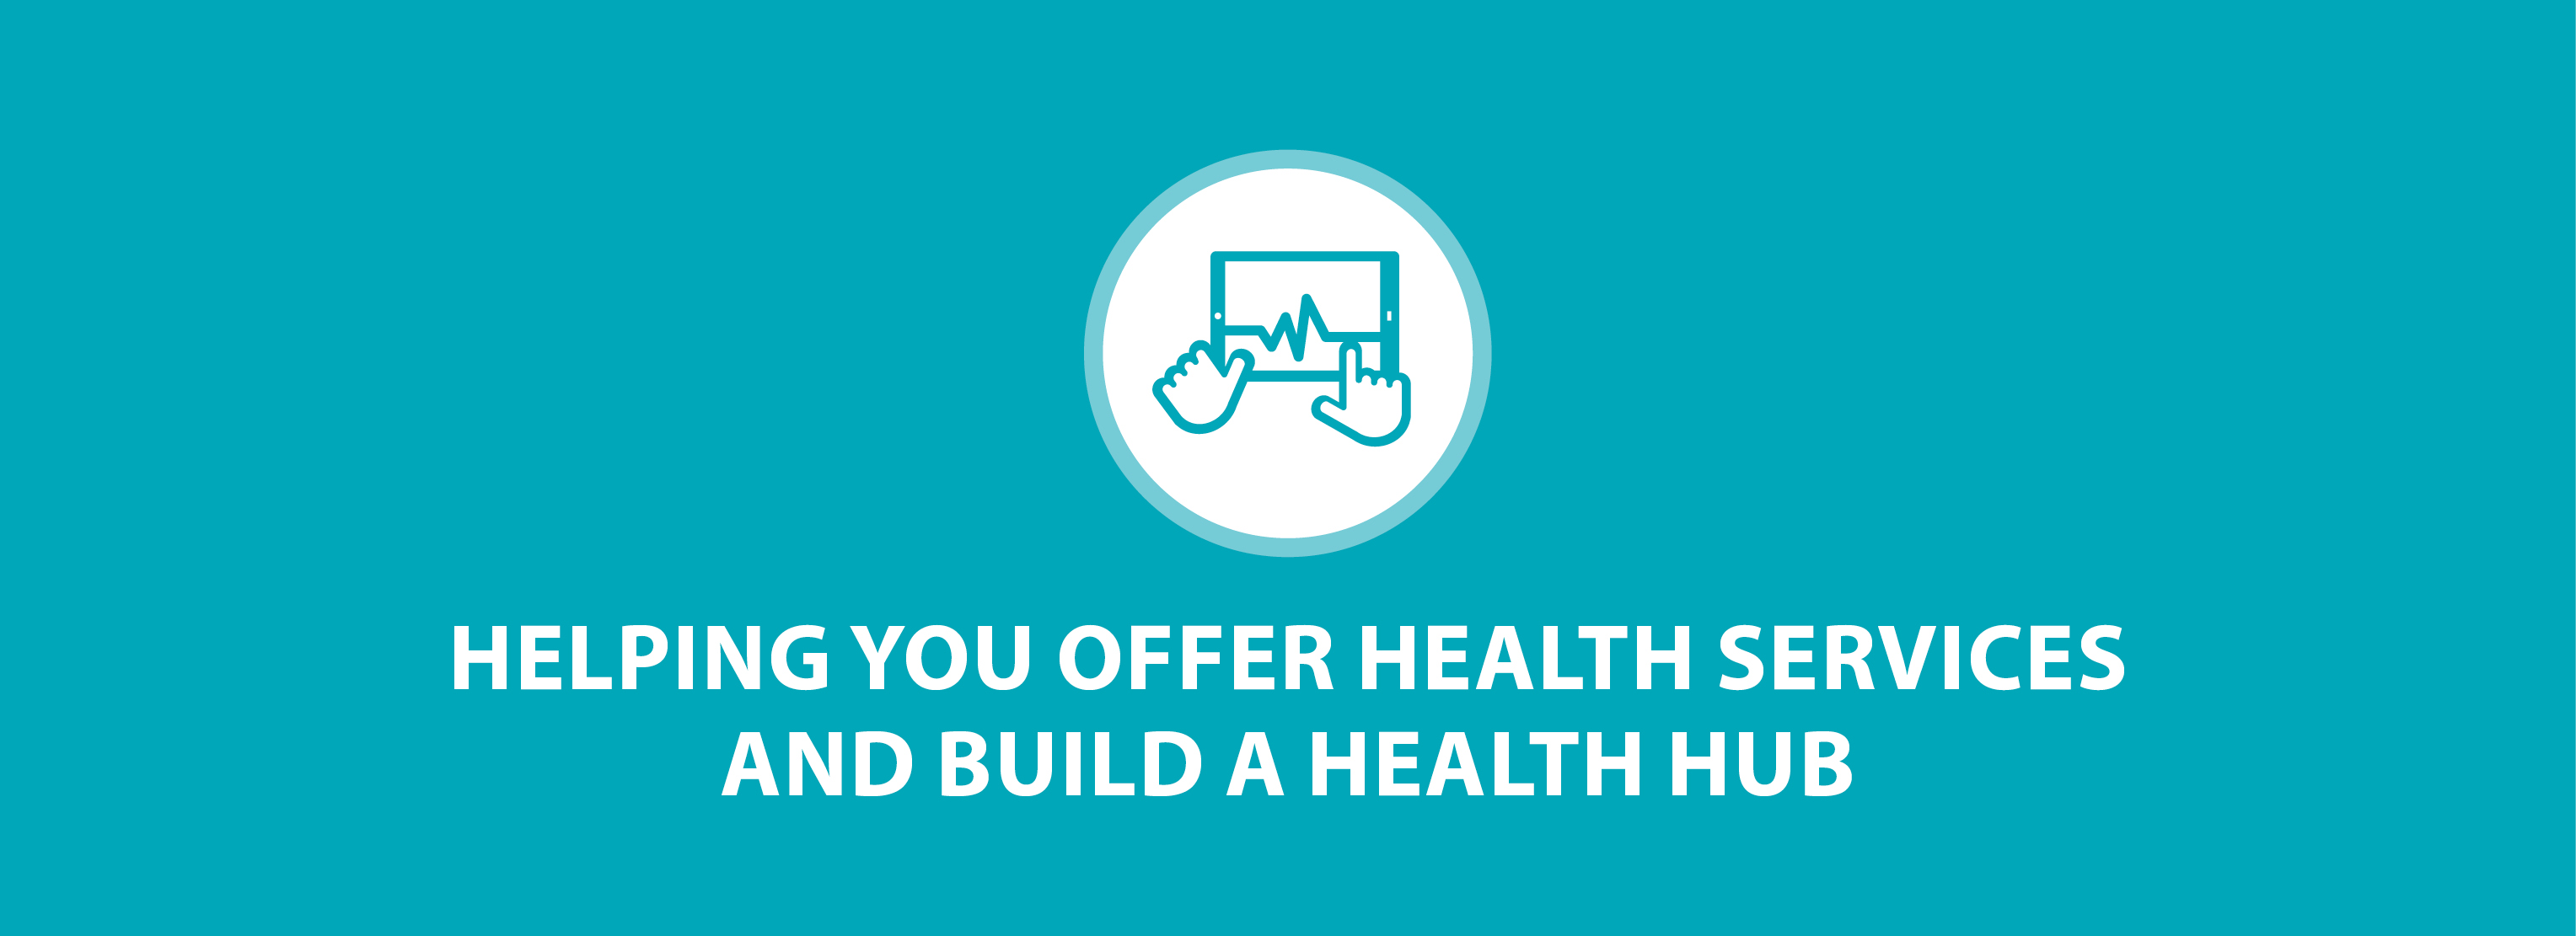 Health Services Header - Teal